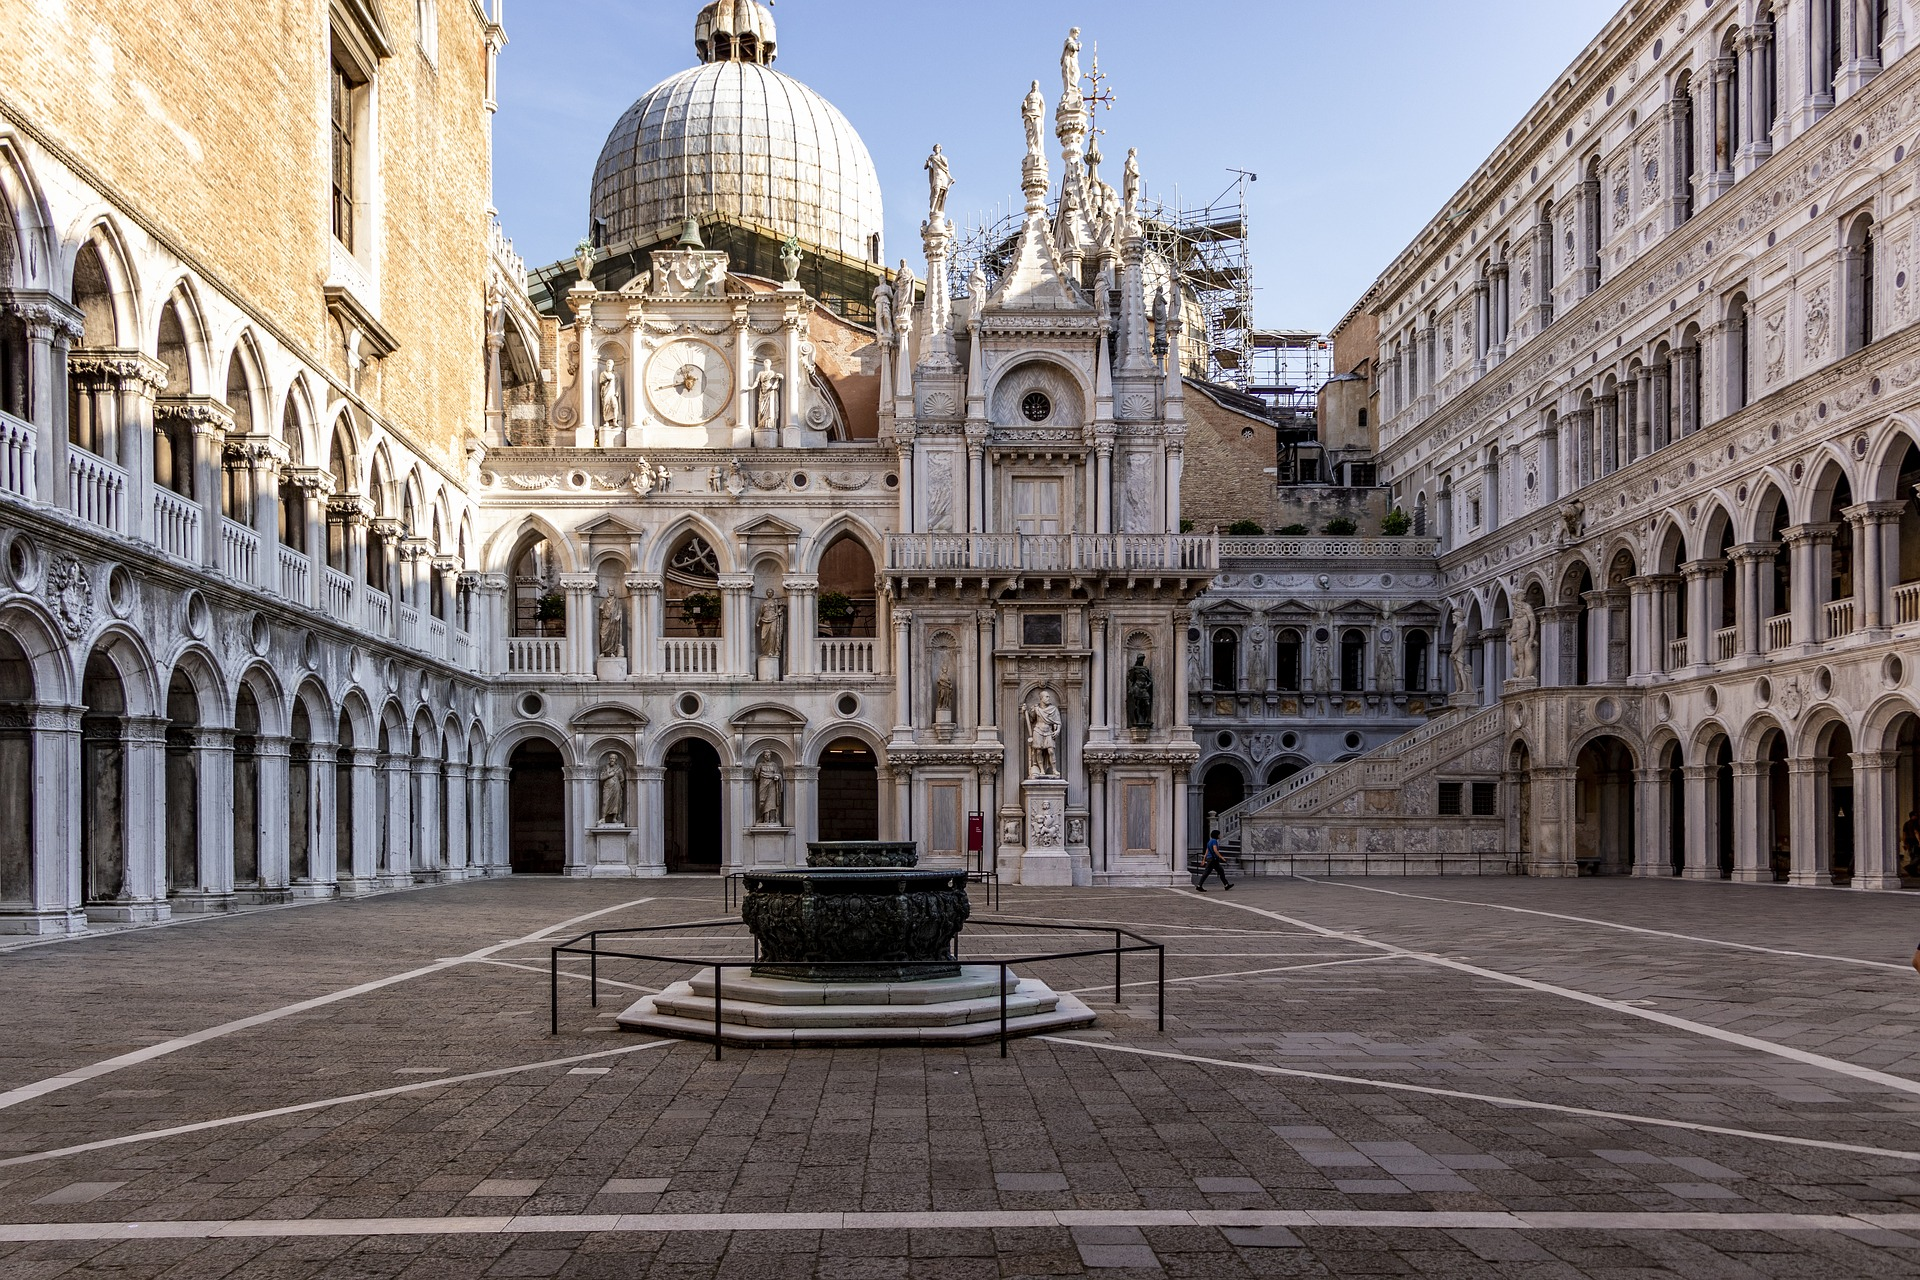 Walks of Italy Review